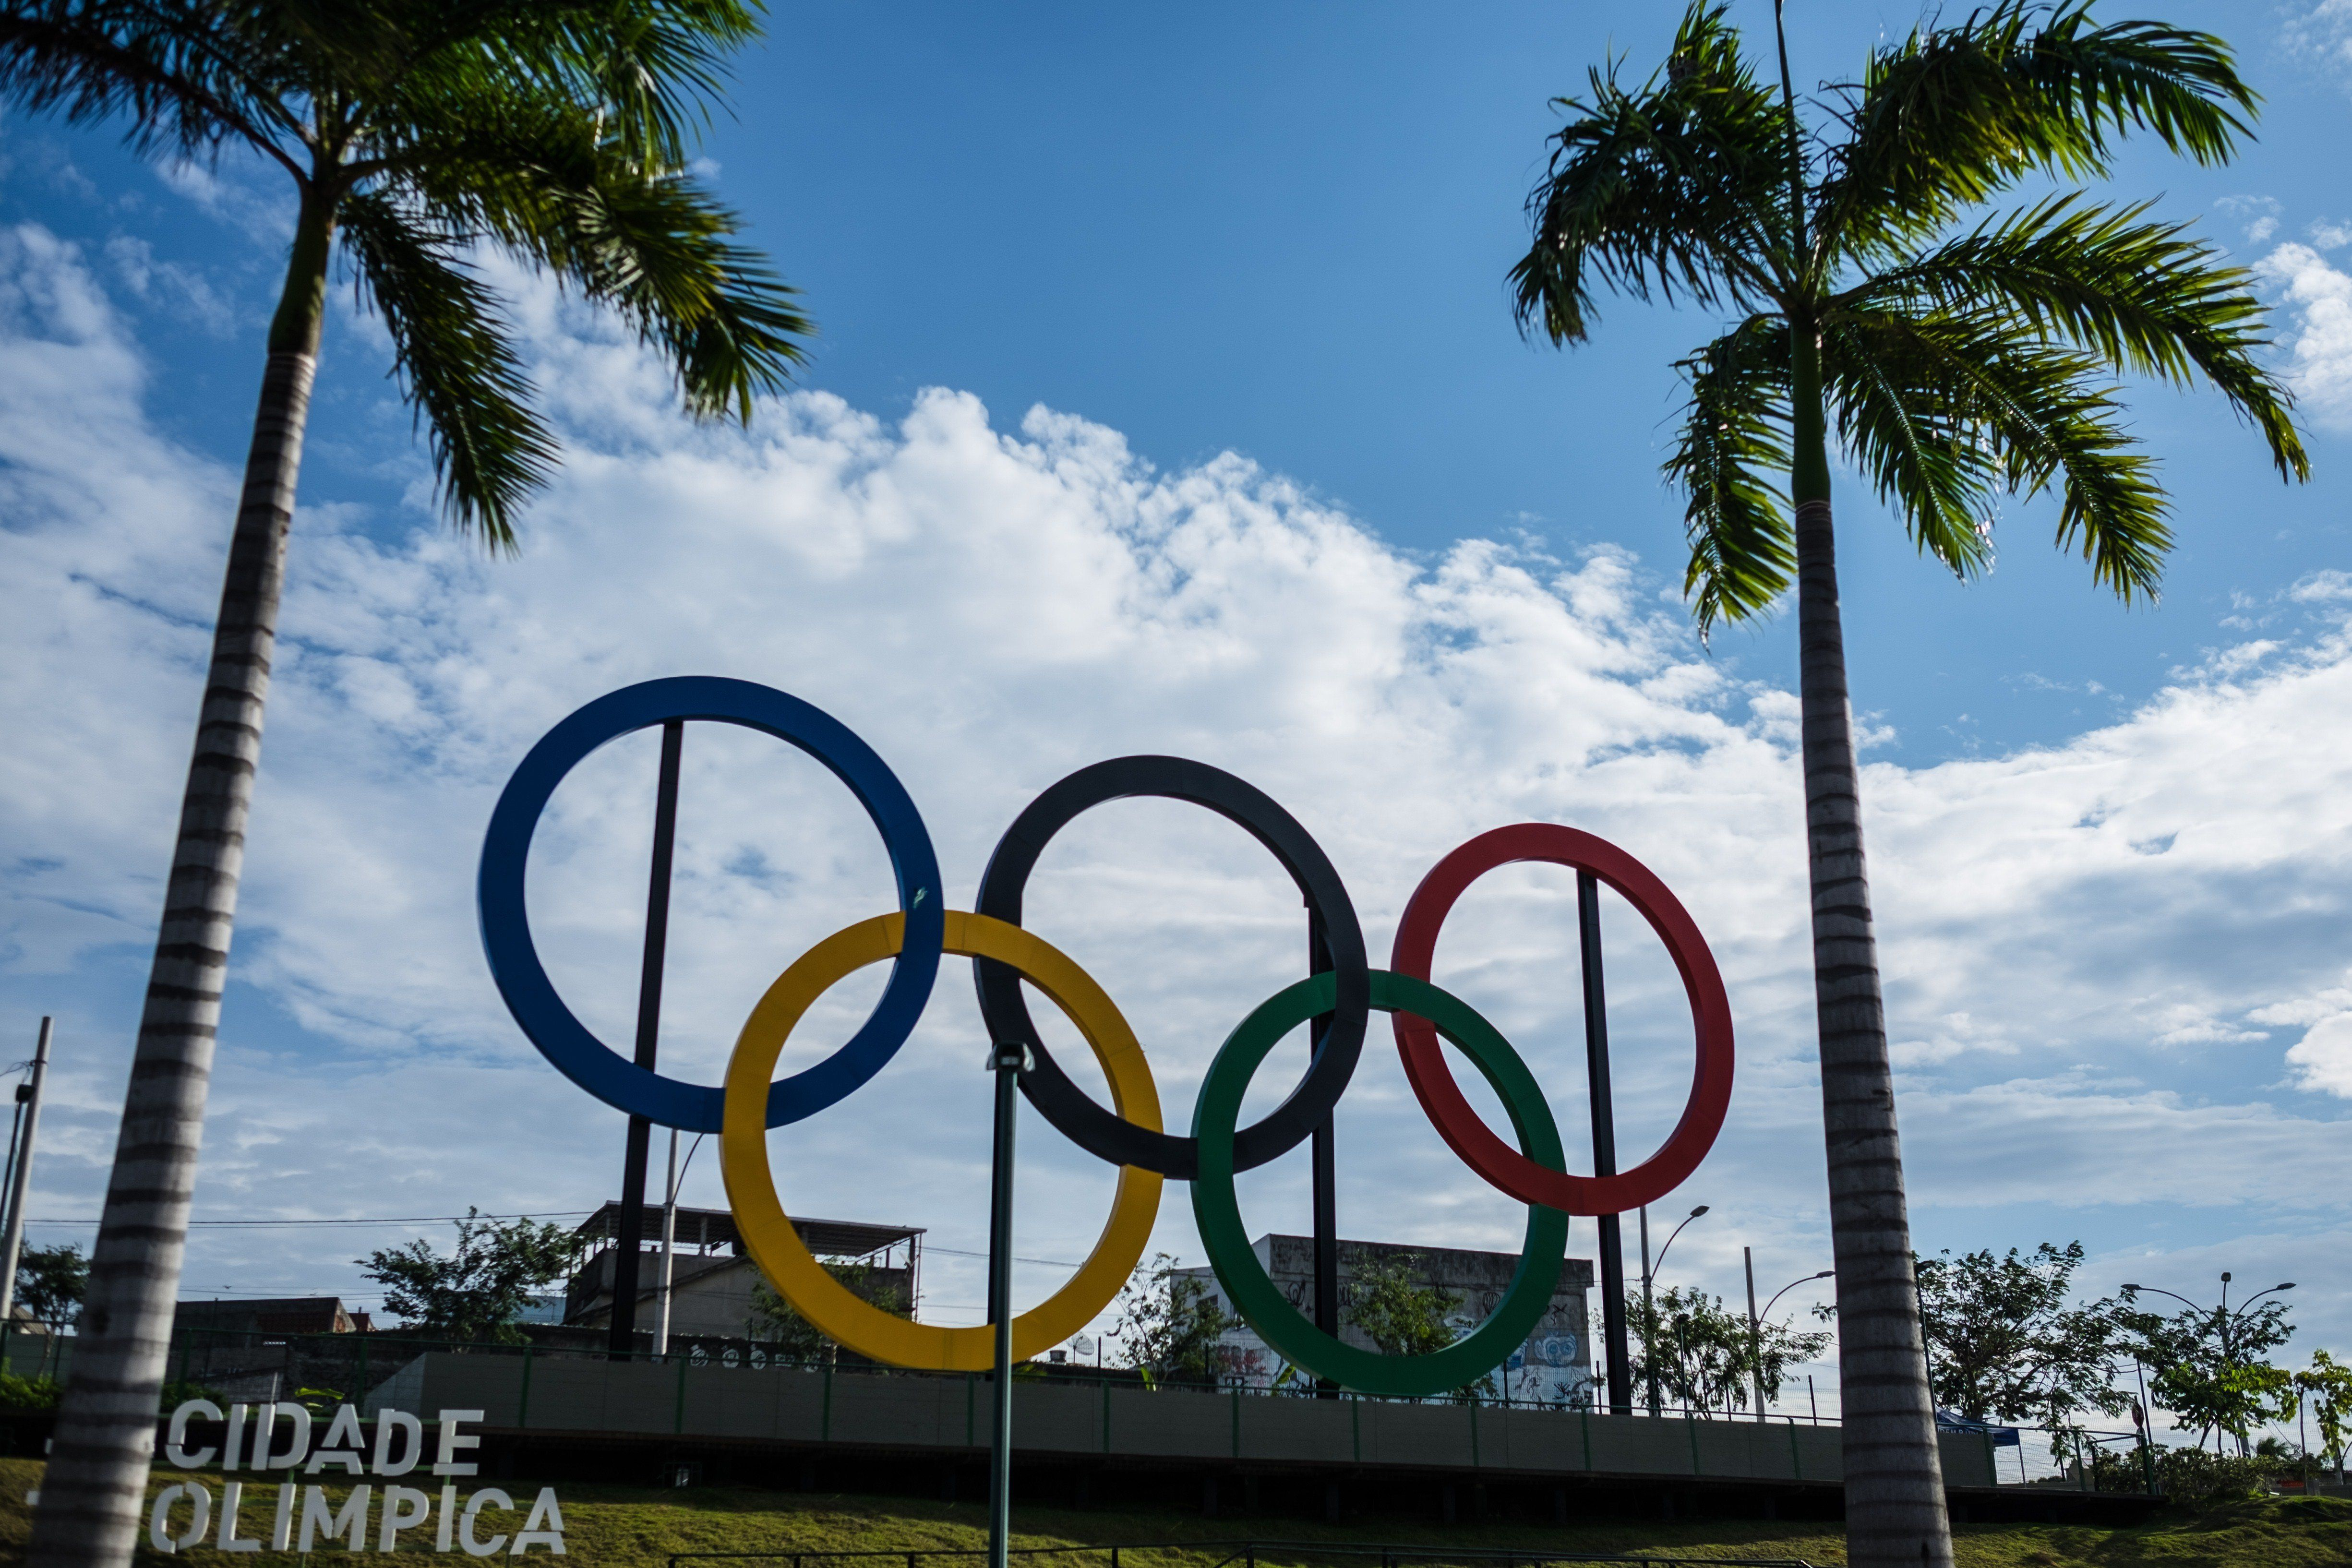 The Olympic rings in Madureira Park, the third largest park in Rio de Janeiro, Brazil, on July 1, 2015 -- 400 days ahead of t